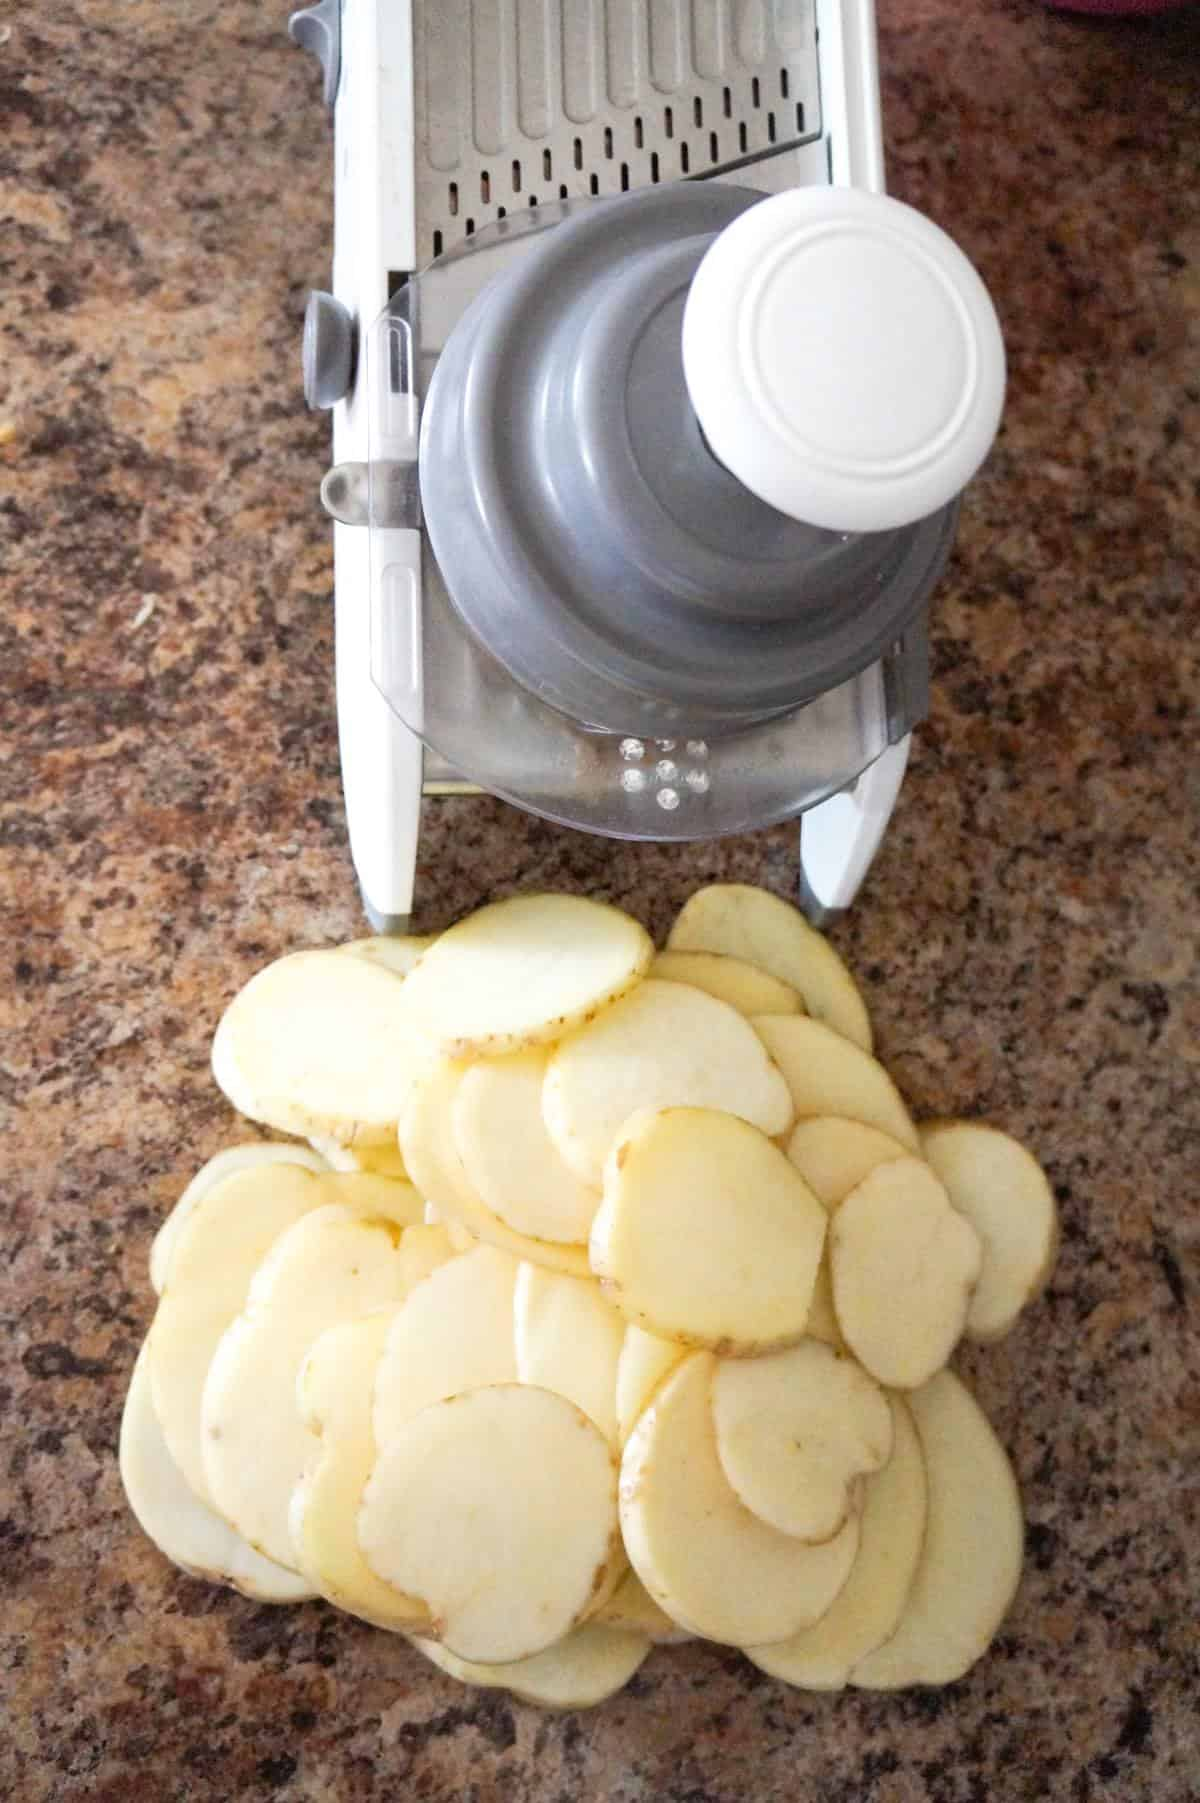 sliced potatoes and a mandoline slicer